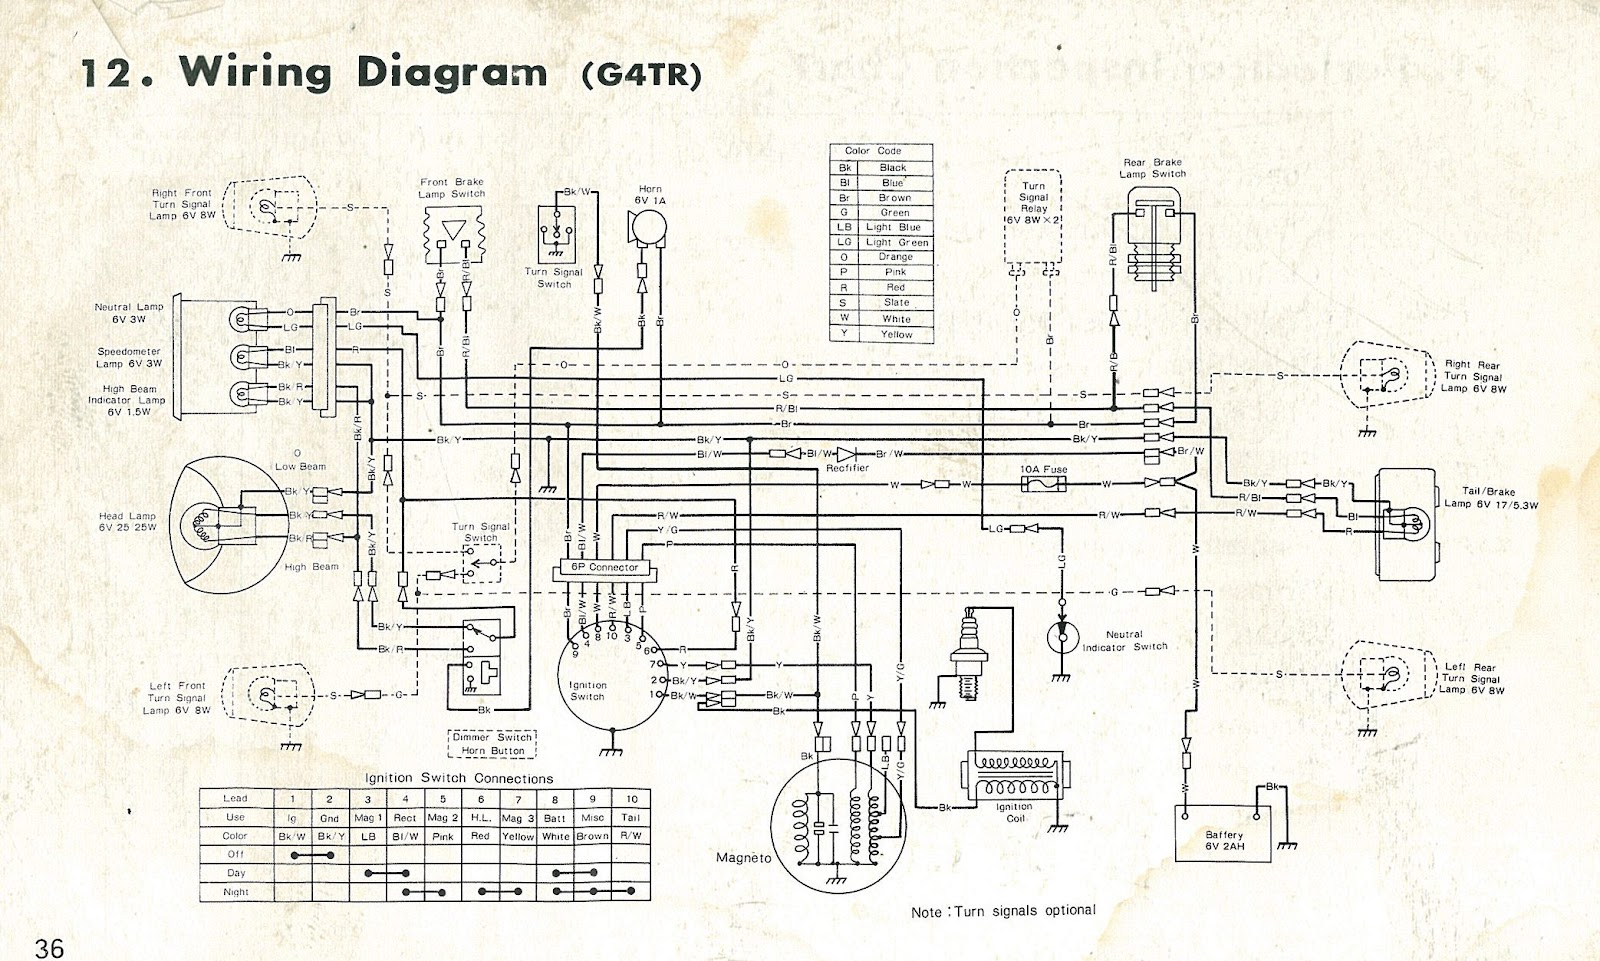 1972 Cub Cadet Wiring Diagram - Wiring Diagrams Dock